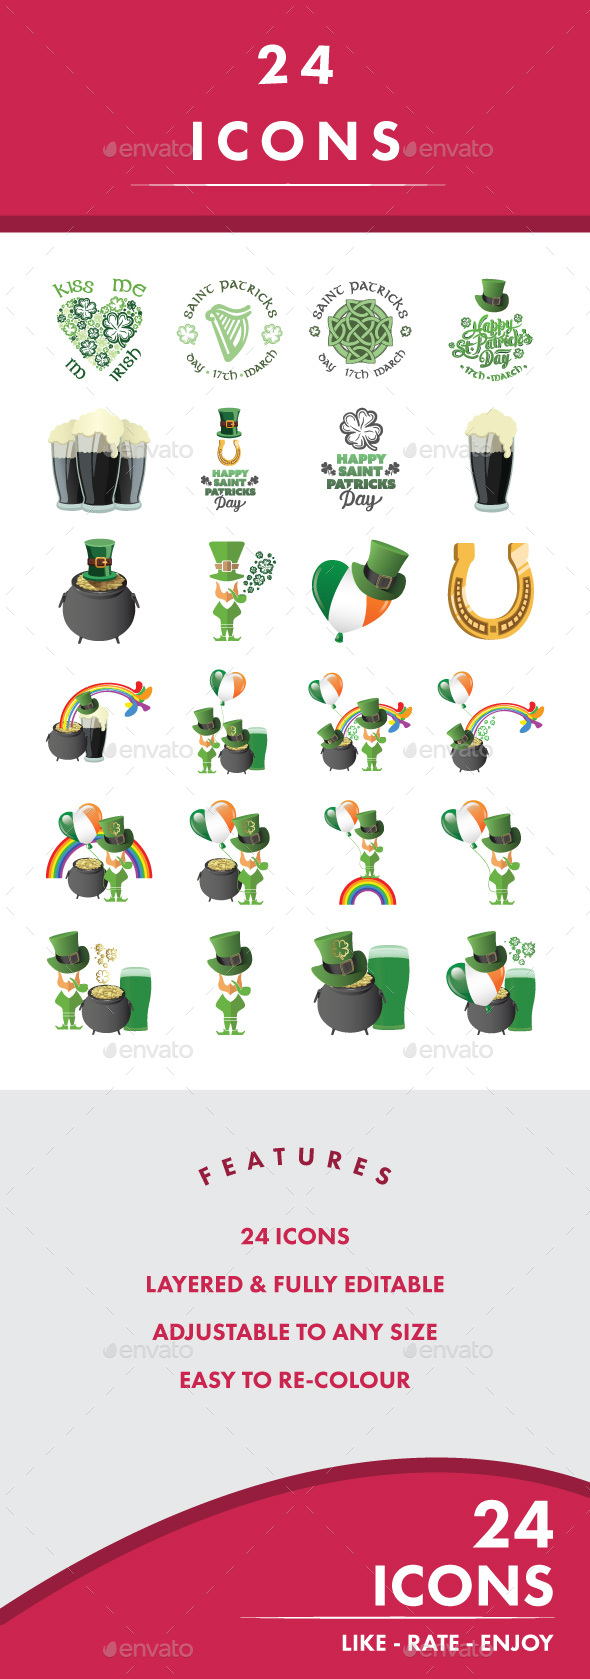 St. Patrick's Day - Icons